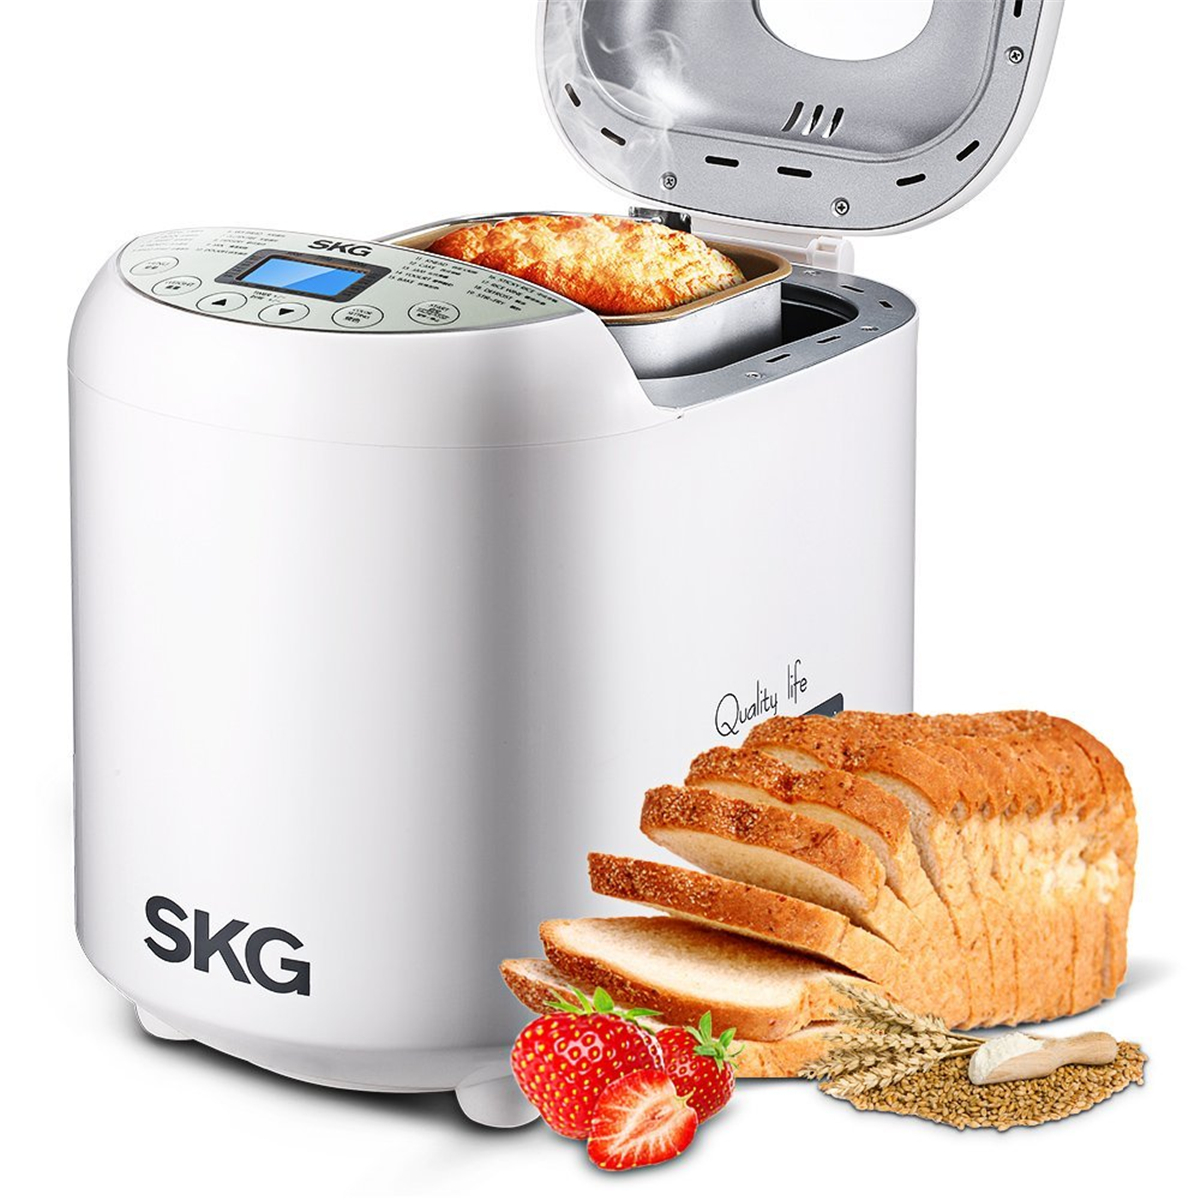 SKG 2LB Automatic Electric Bread Maker Machine Beginner Friendly Bread Maker with Recipes Manual(19 Programs, 3 Loaf Sizes, 3 Crust Colors, 15 Hours Delay Timer, 1 Hour Keep Warm)